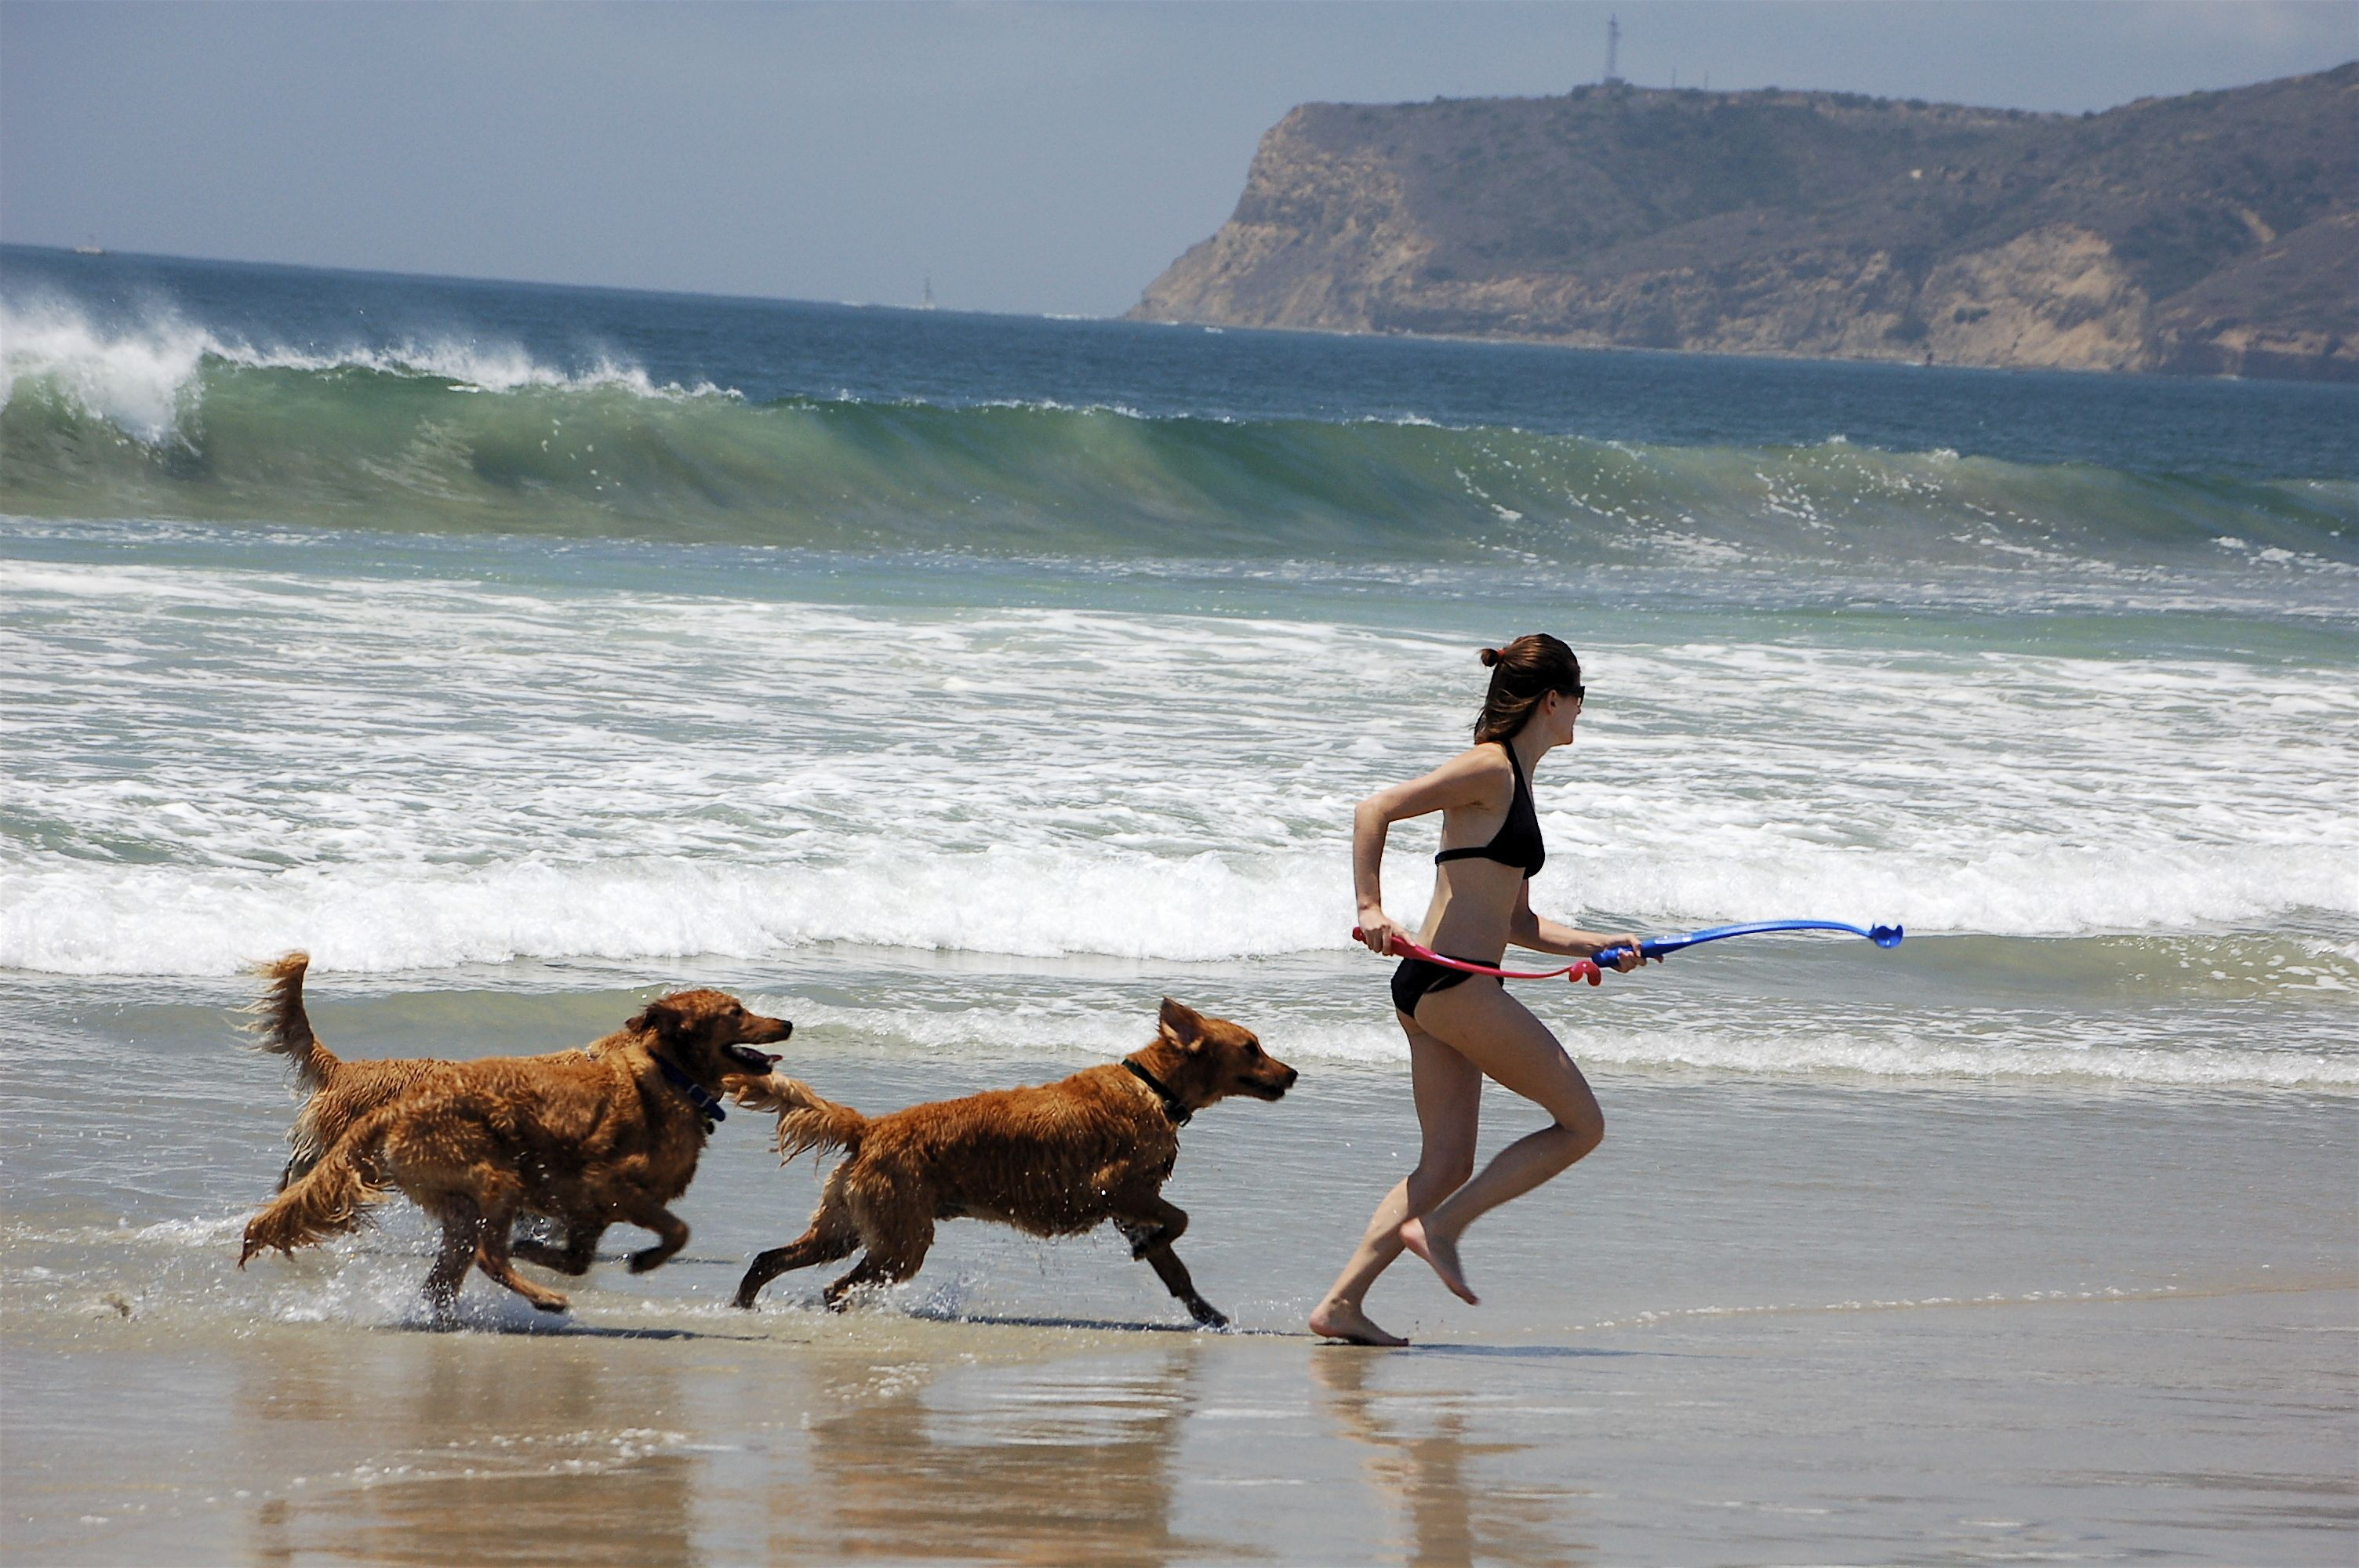 San Diego S Beaches Are World Famous For Their Excellent Surf